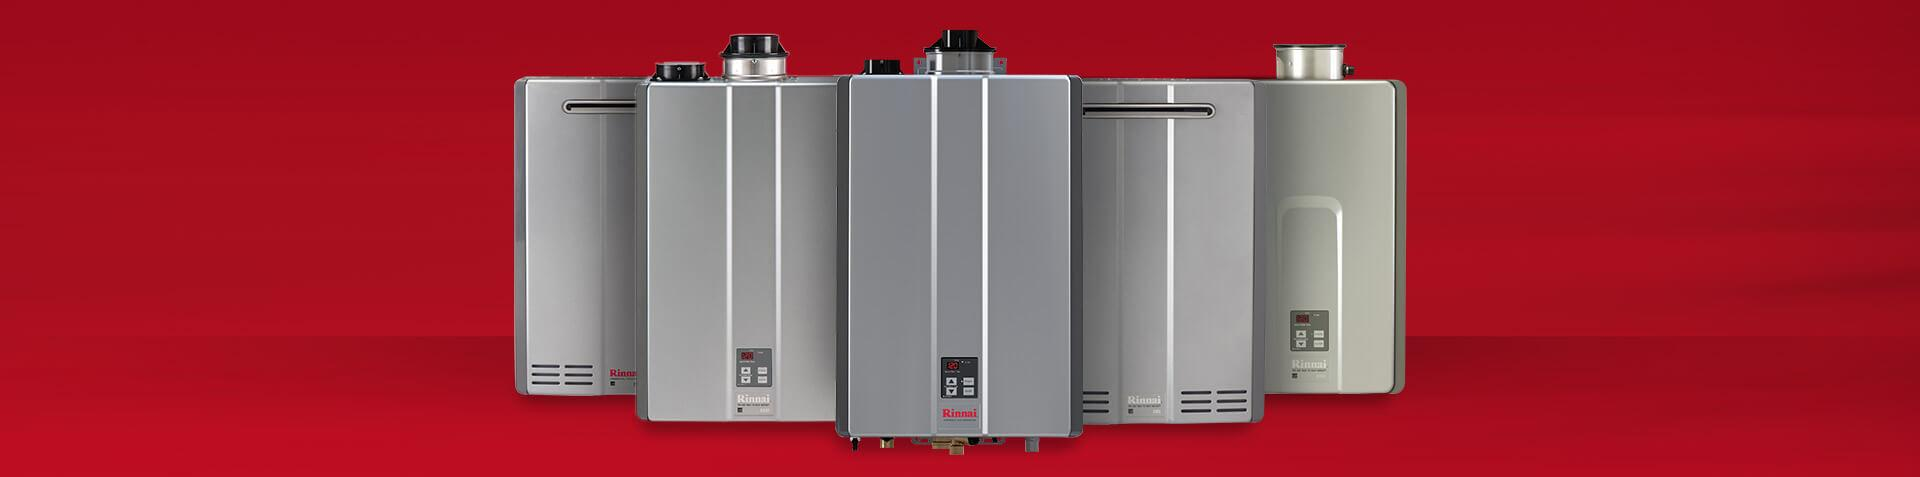 rinnai tankless water heaters.jpg